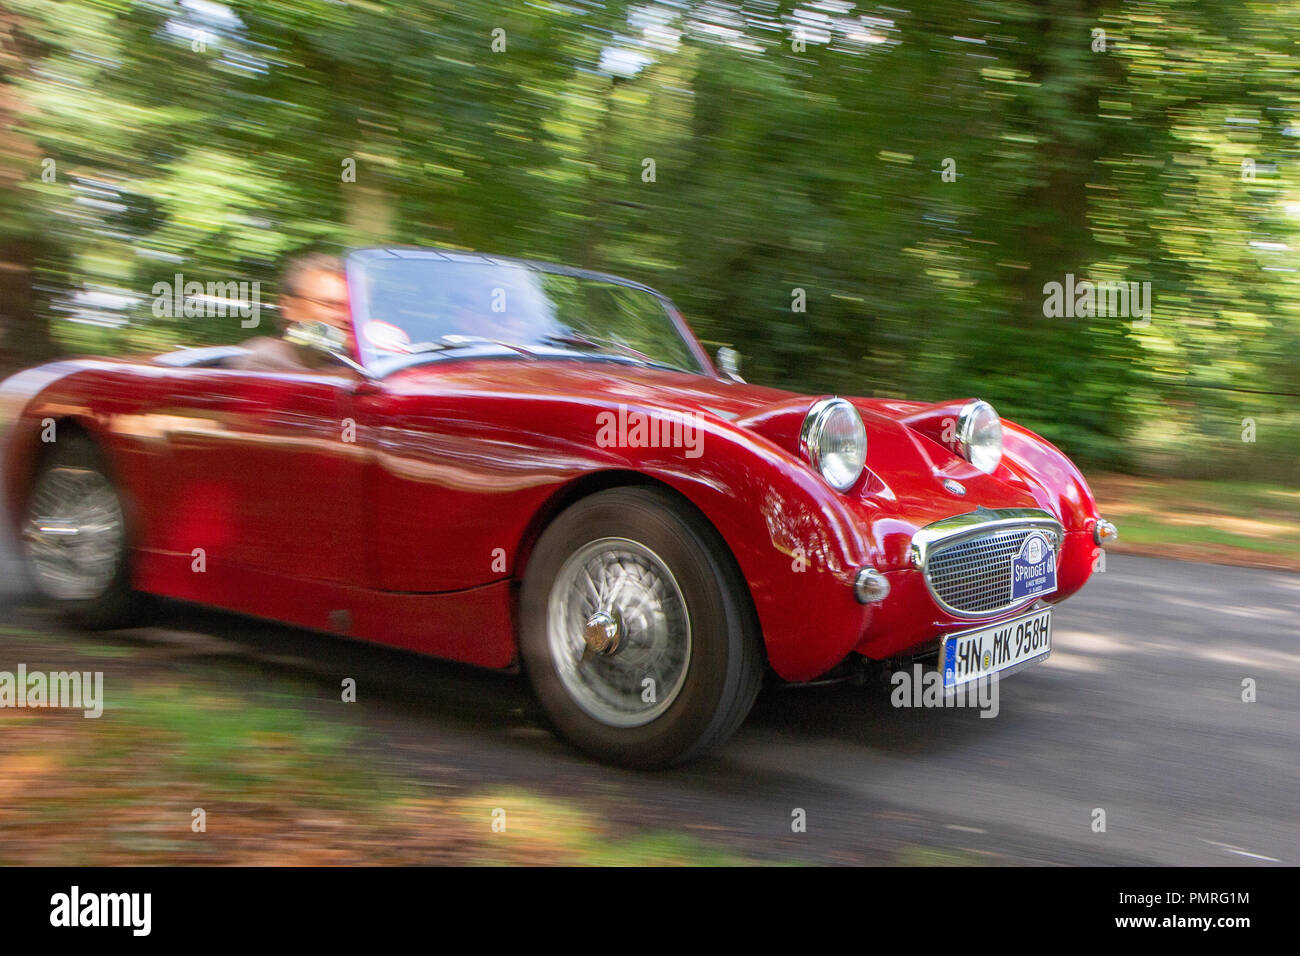 The 60th year of the Austin Healey Sprite was celebrated by the Midget and Sprite Club with a Spridget 60 weekend at Wroxall Abbey near Warwick, - Stock Image